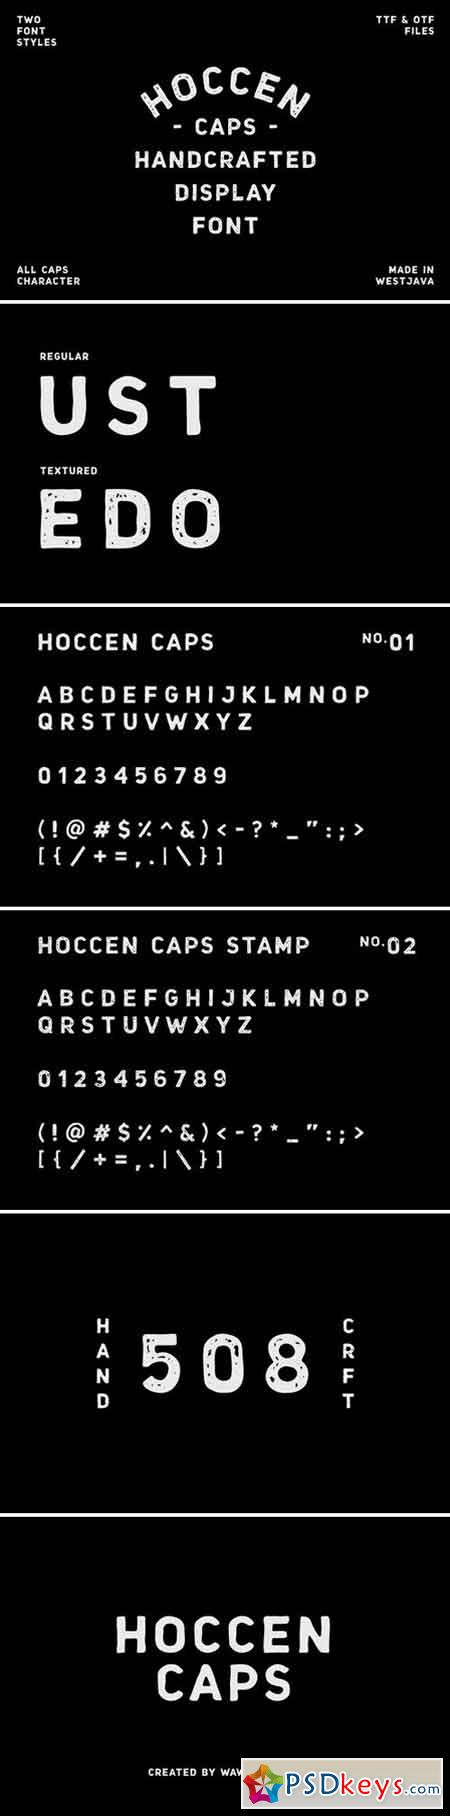 HOCCEN CAPS Display Font 2154016